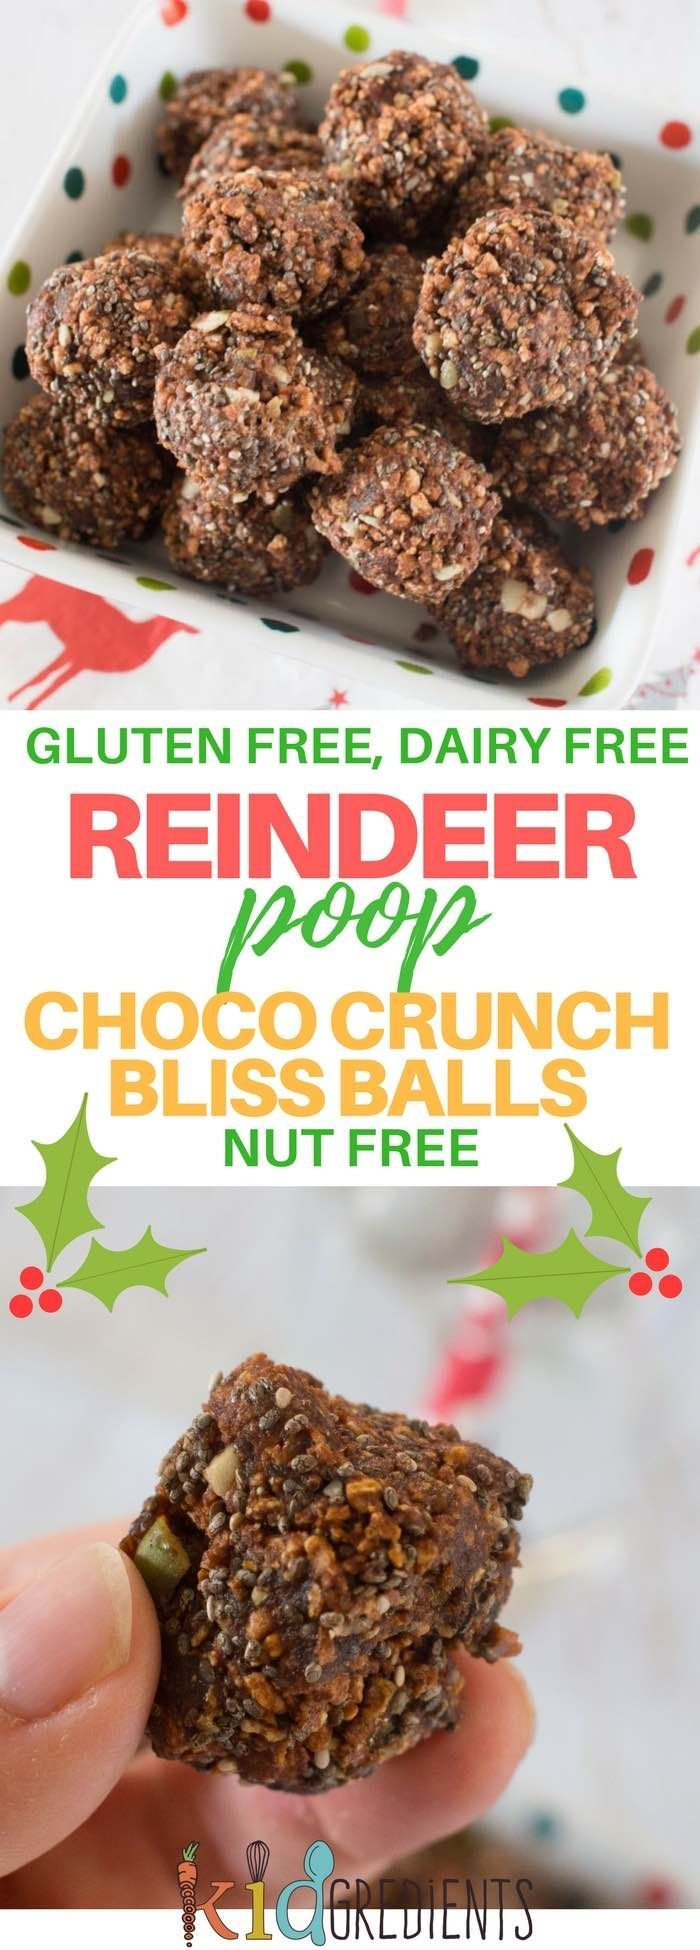 Reindeer poop- choco crunch bliss balls, crunchy, yummy, gluten free, dairy free and without desiccated coconut! Perfect for the lunch box and easy to make! #kidsfood #glutenfree #dairyfree #vegan #lunchbox #christmastreat #chocolate #healthykids  via @kidgredients